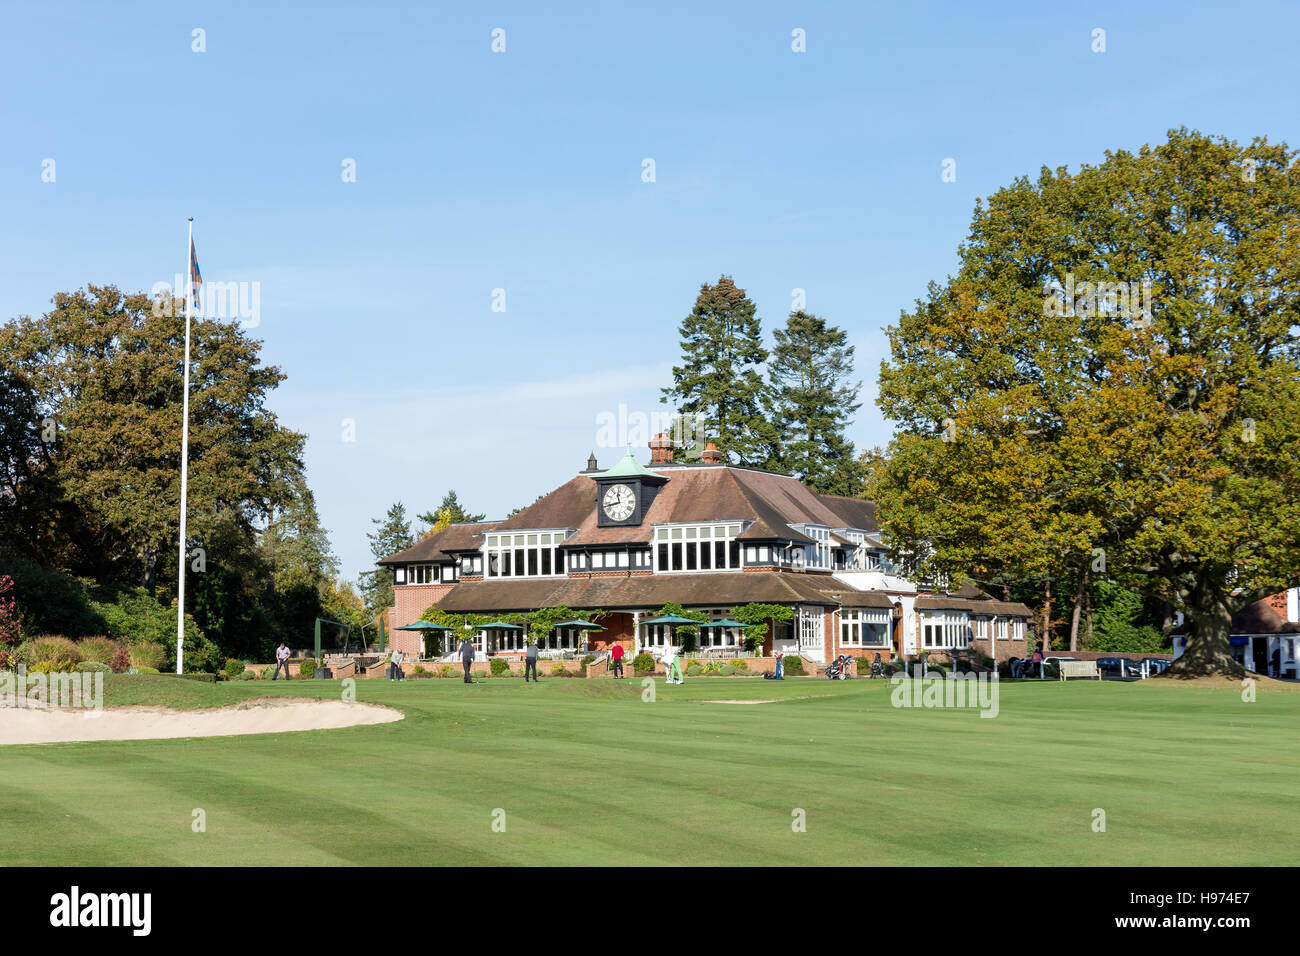 Clubhouse and 18th Green, Sunningdale Golf Course, Sunningdale, Berkshire, England, United Kingdom - Stock Image